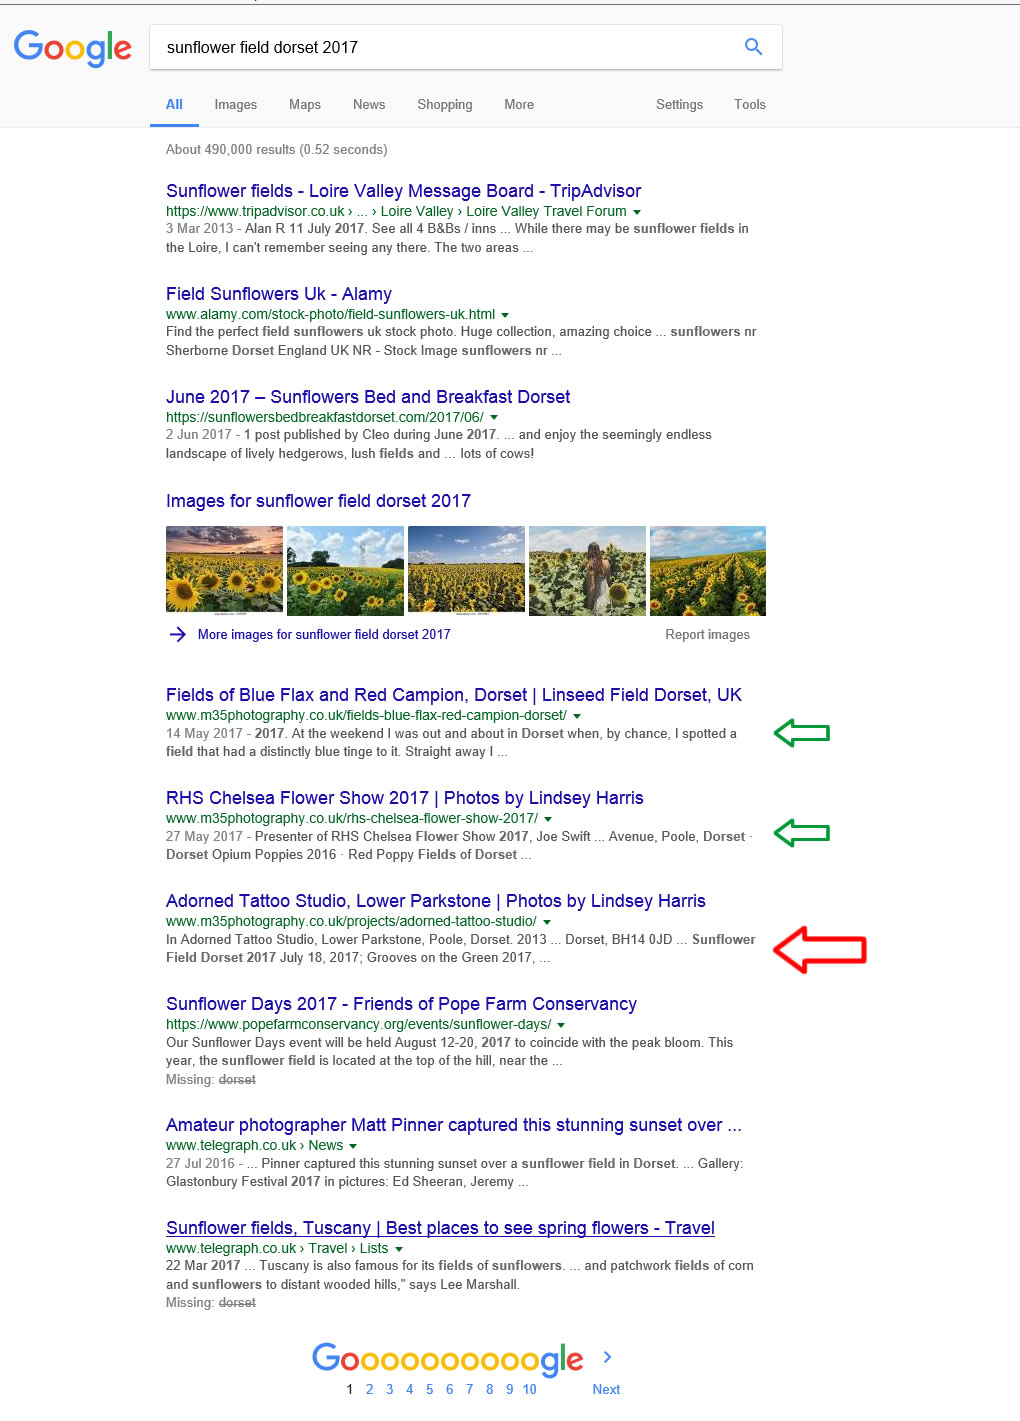 Google screenshot of sunflower search